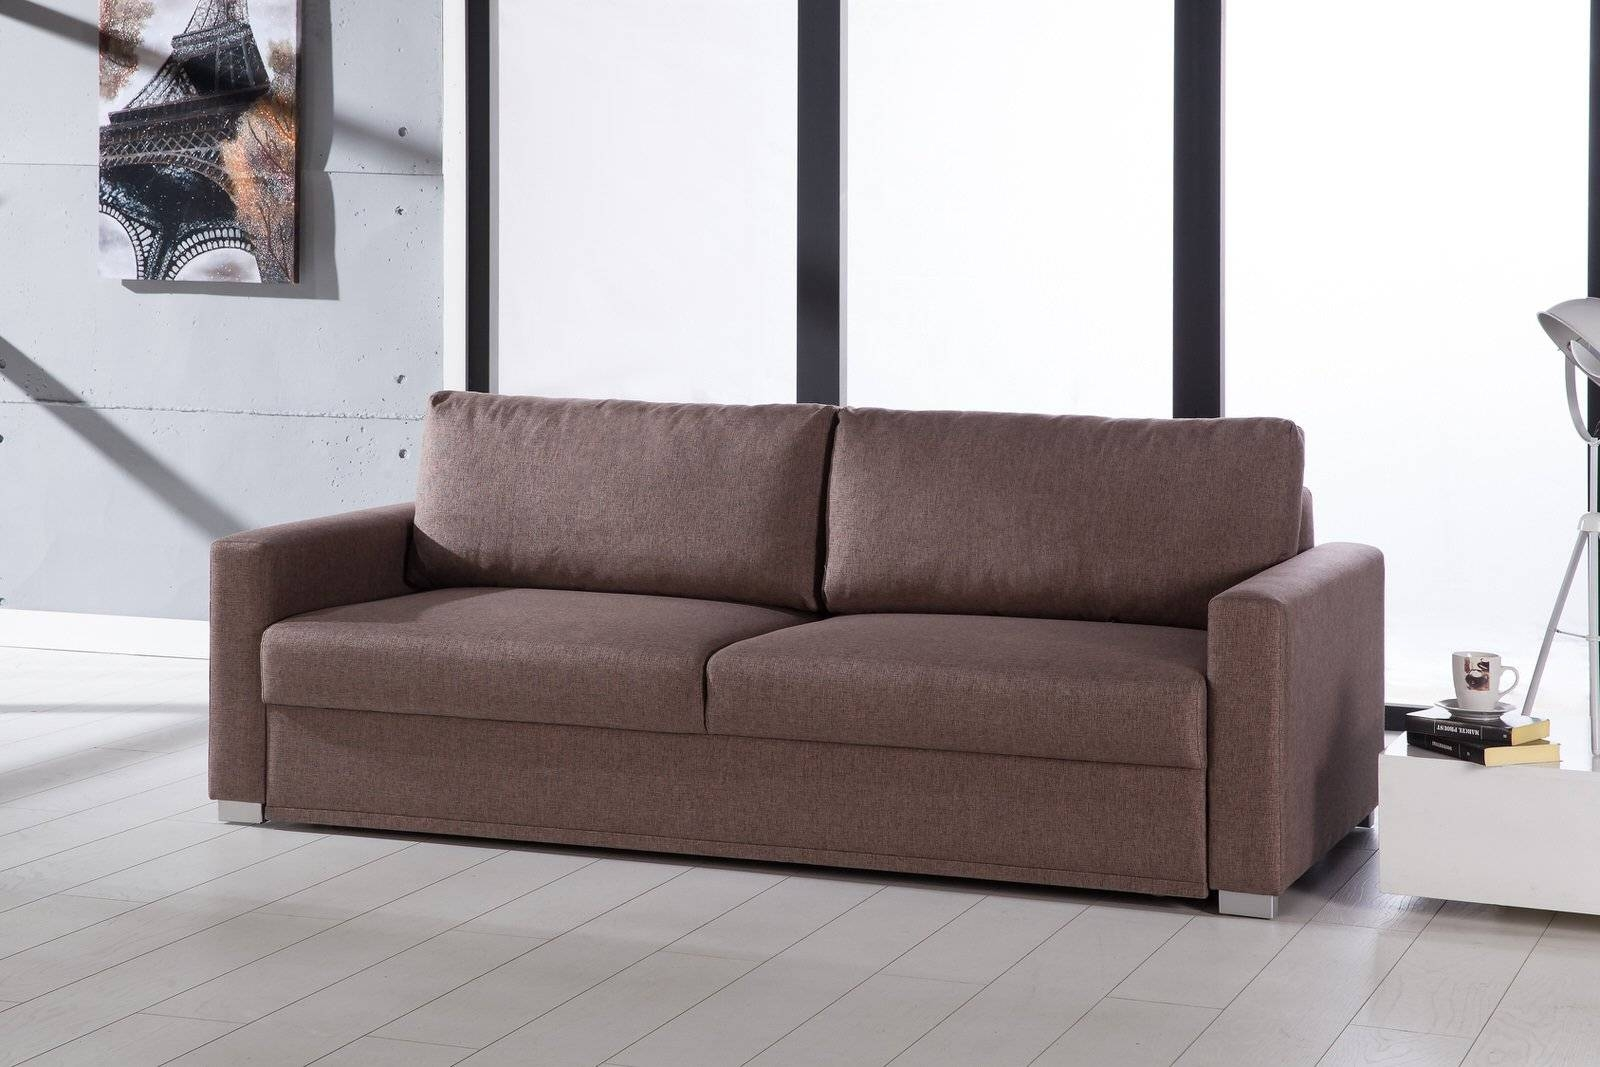 Felix Diego Light Brown Convertible Sofa Bedsunset regarding Convertible Queen Sofas (Image 5 of 15)